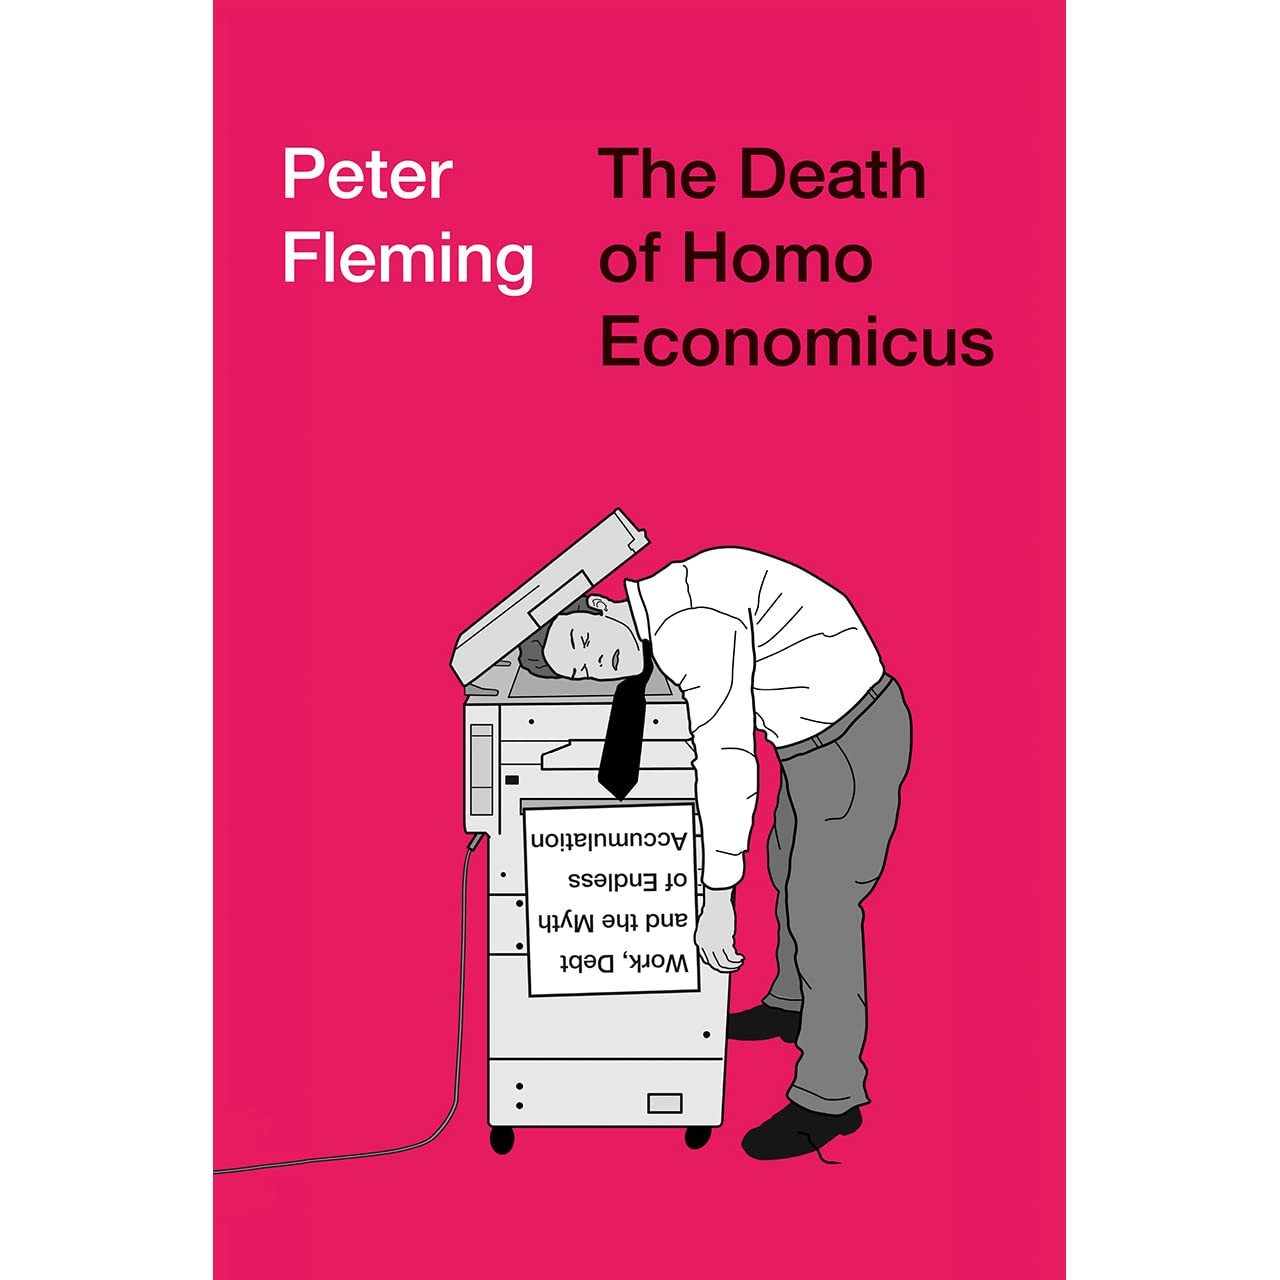 Work Debt and the Myth of Endless Accumulation The Death of Homo Economicus